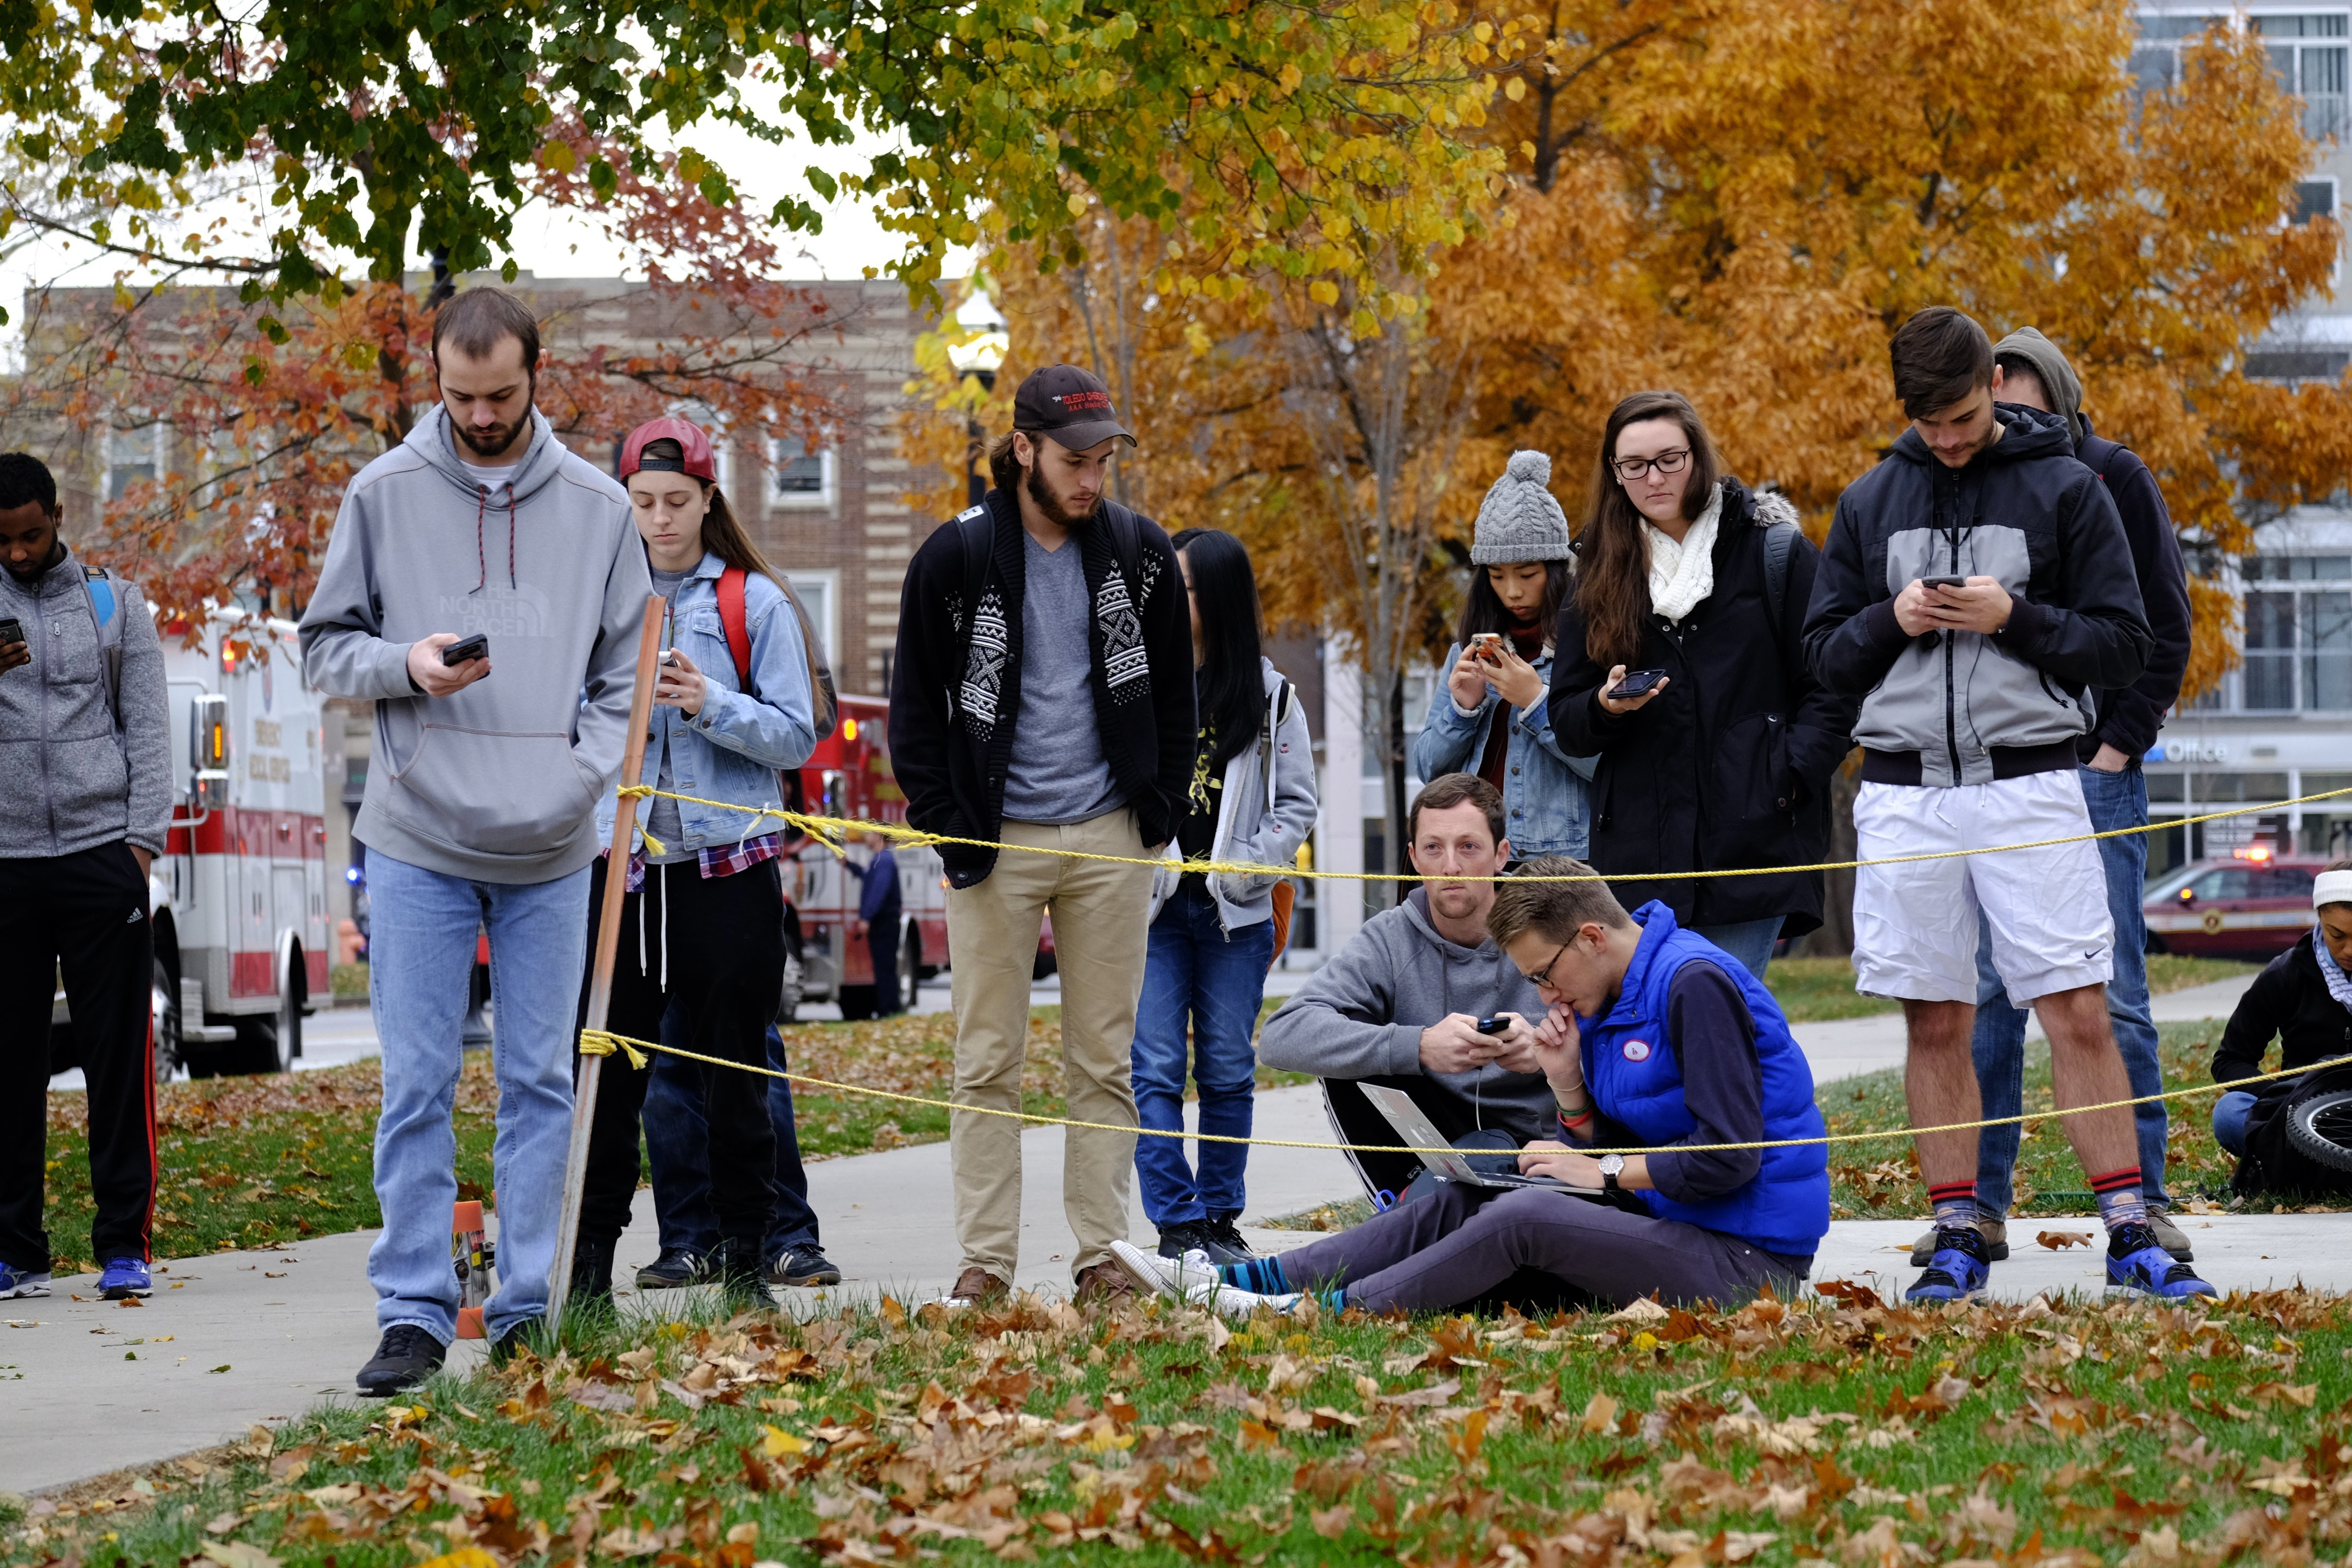 Students gather near the scene of an attack on the campus at Ohio State University on Monday, Nov. 28, 2016, in Columbus, Ohio. | Adam Cairns/The Columbus Dispatch via AP, St. George News